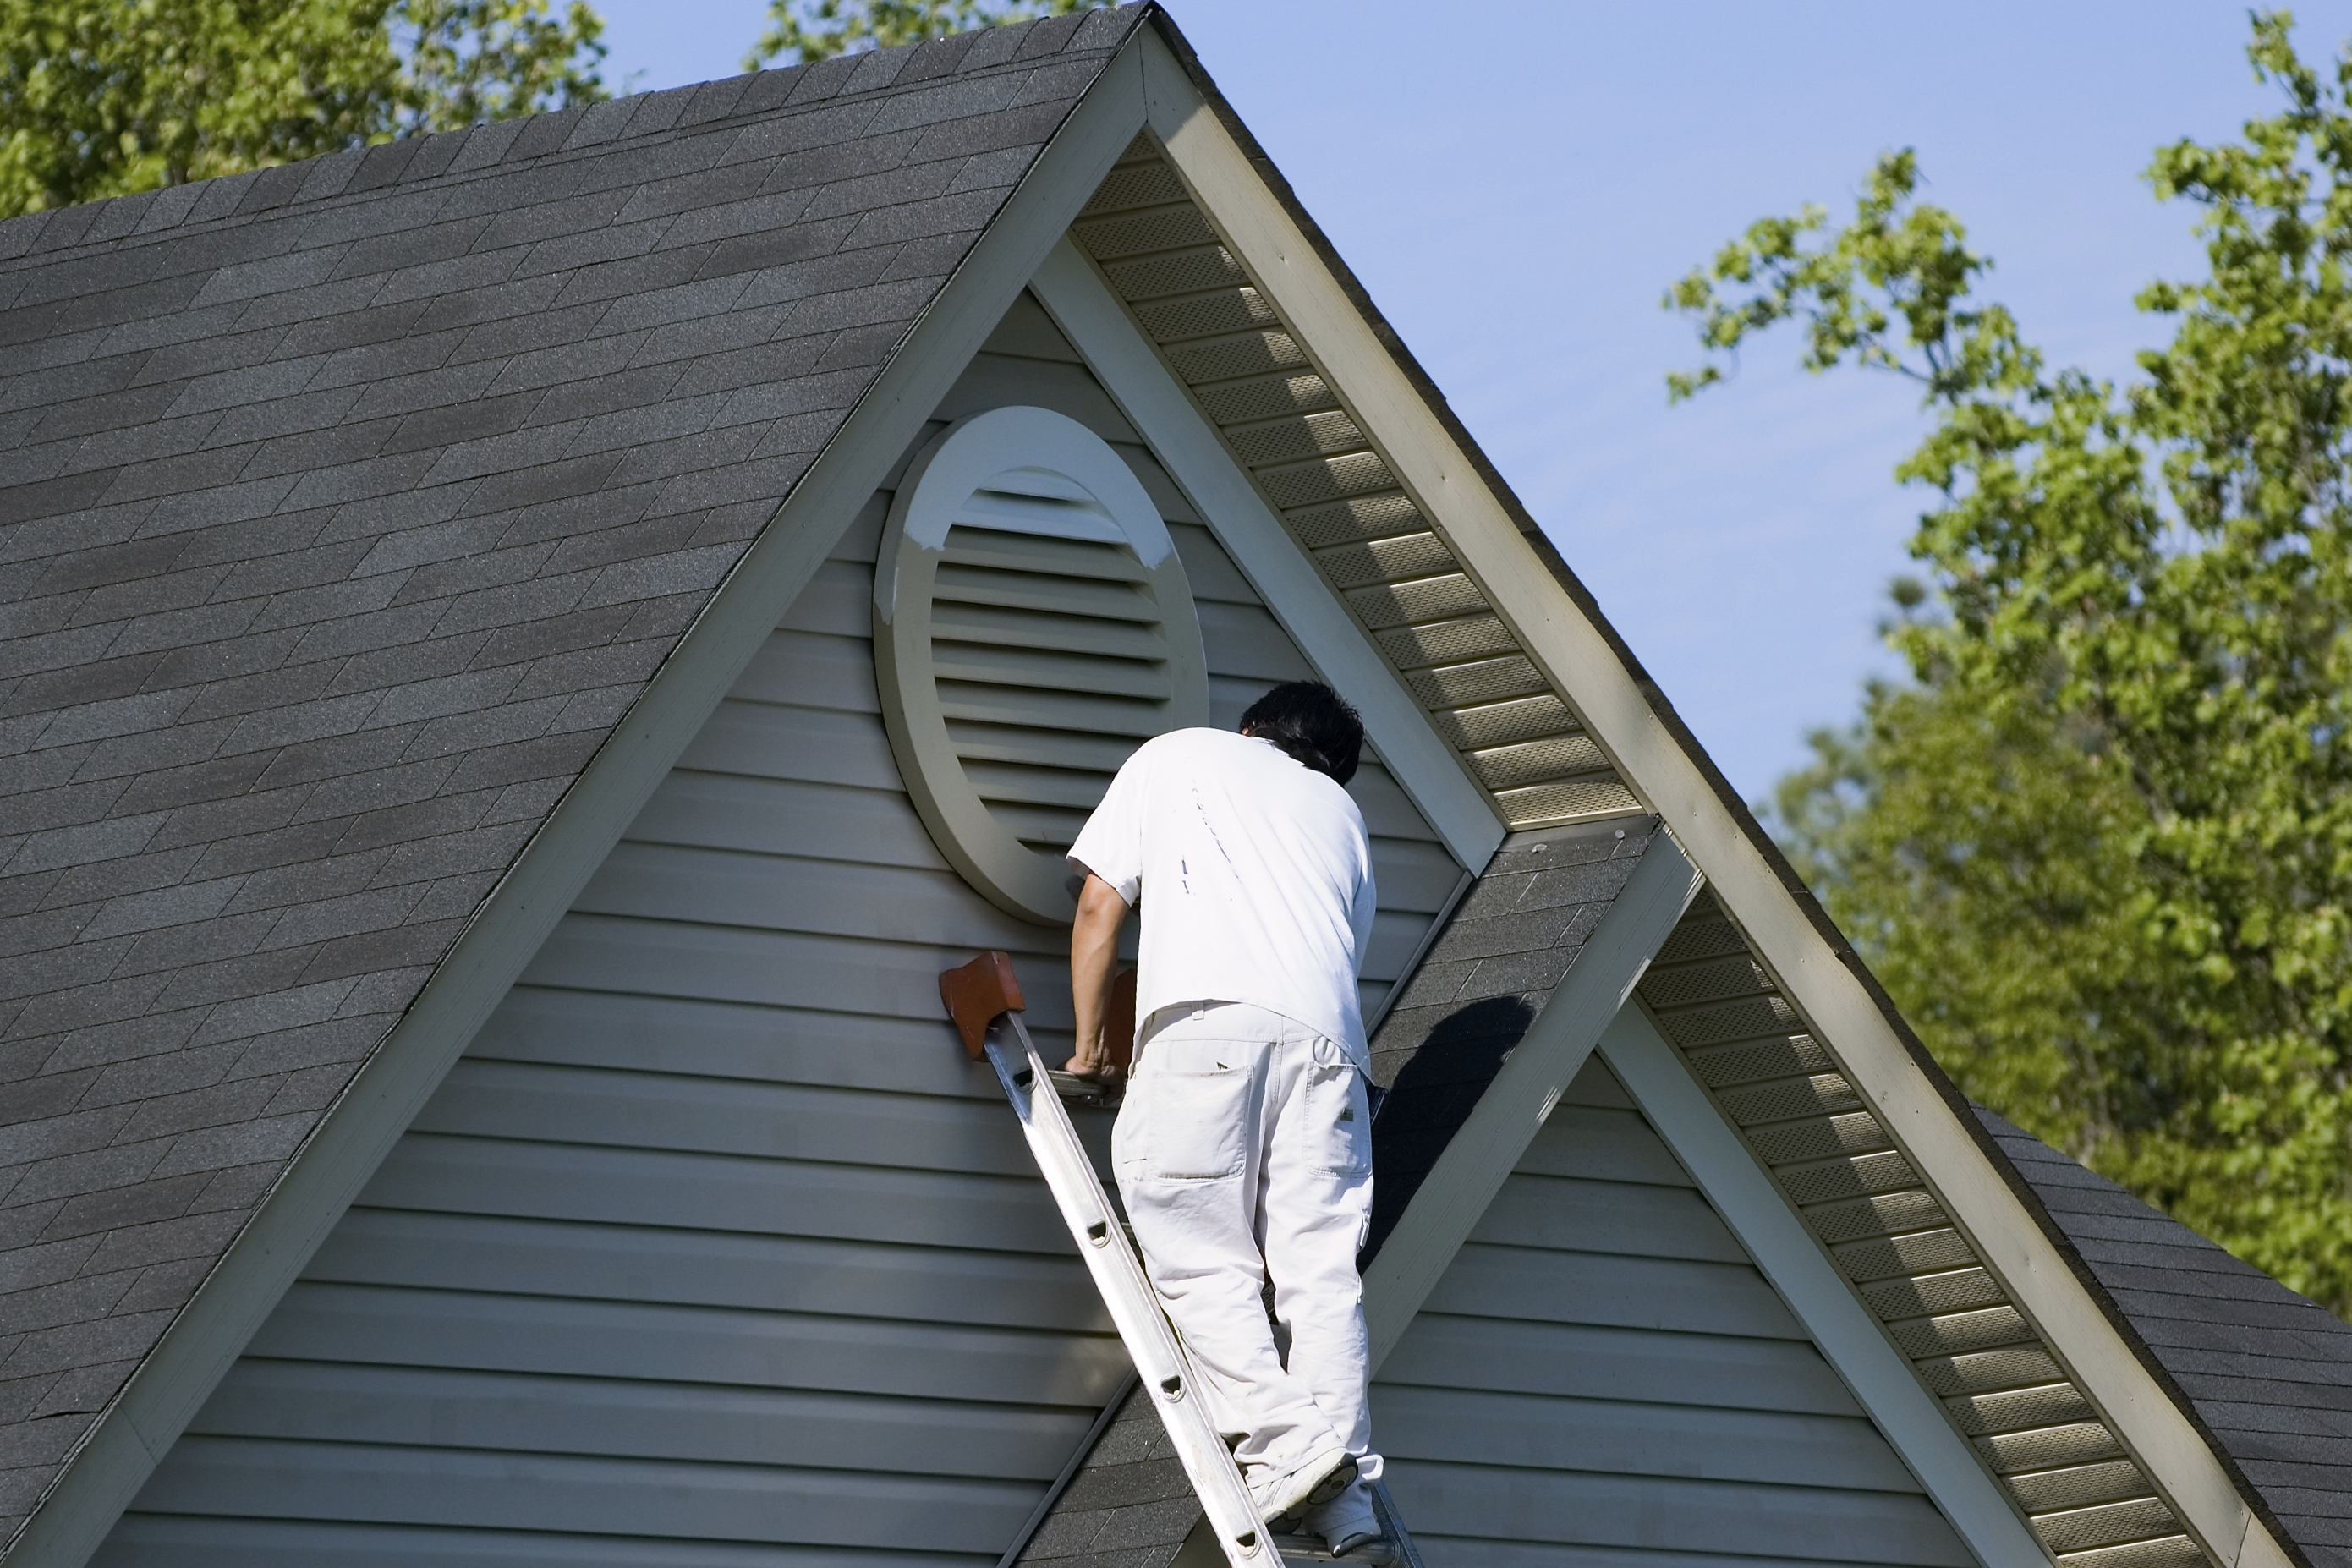 Painting Your Homes Exterior Asj - Home-exterior-painting